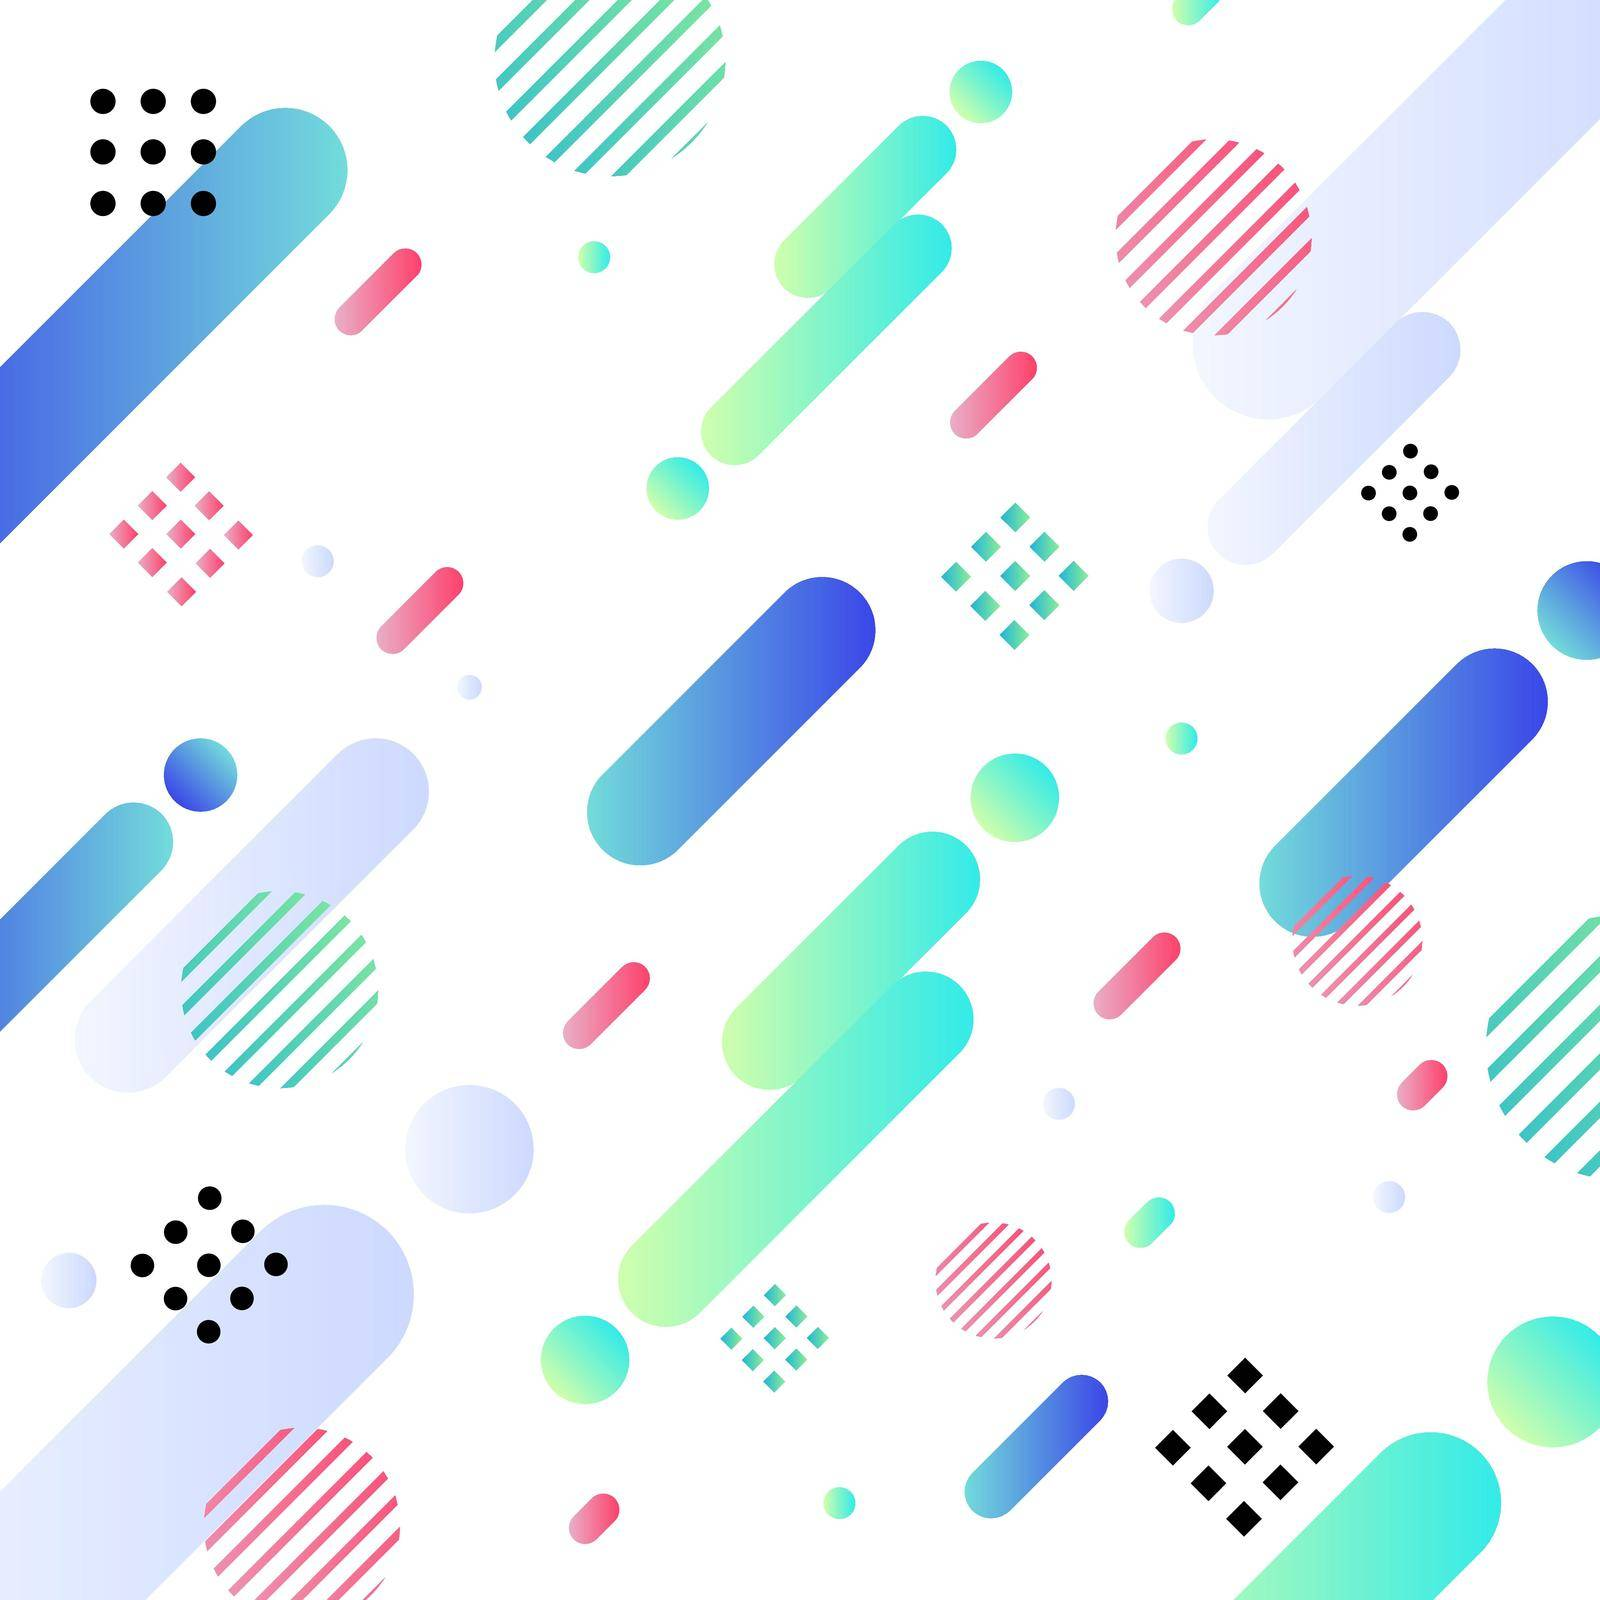 Abstract diagonal geometric pattern design bright color and background. You can use for modern cover design, template, decorated, brochure, flyer, poster, banner web. Vector illustration